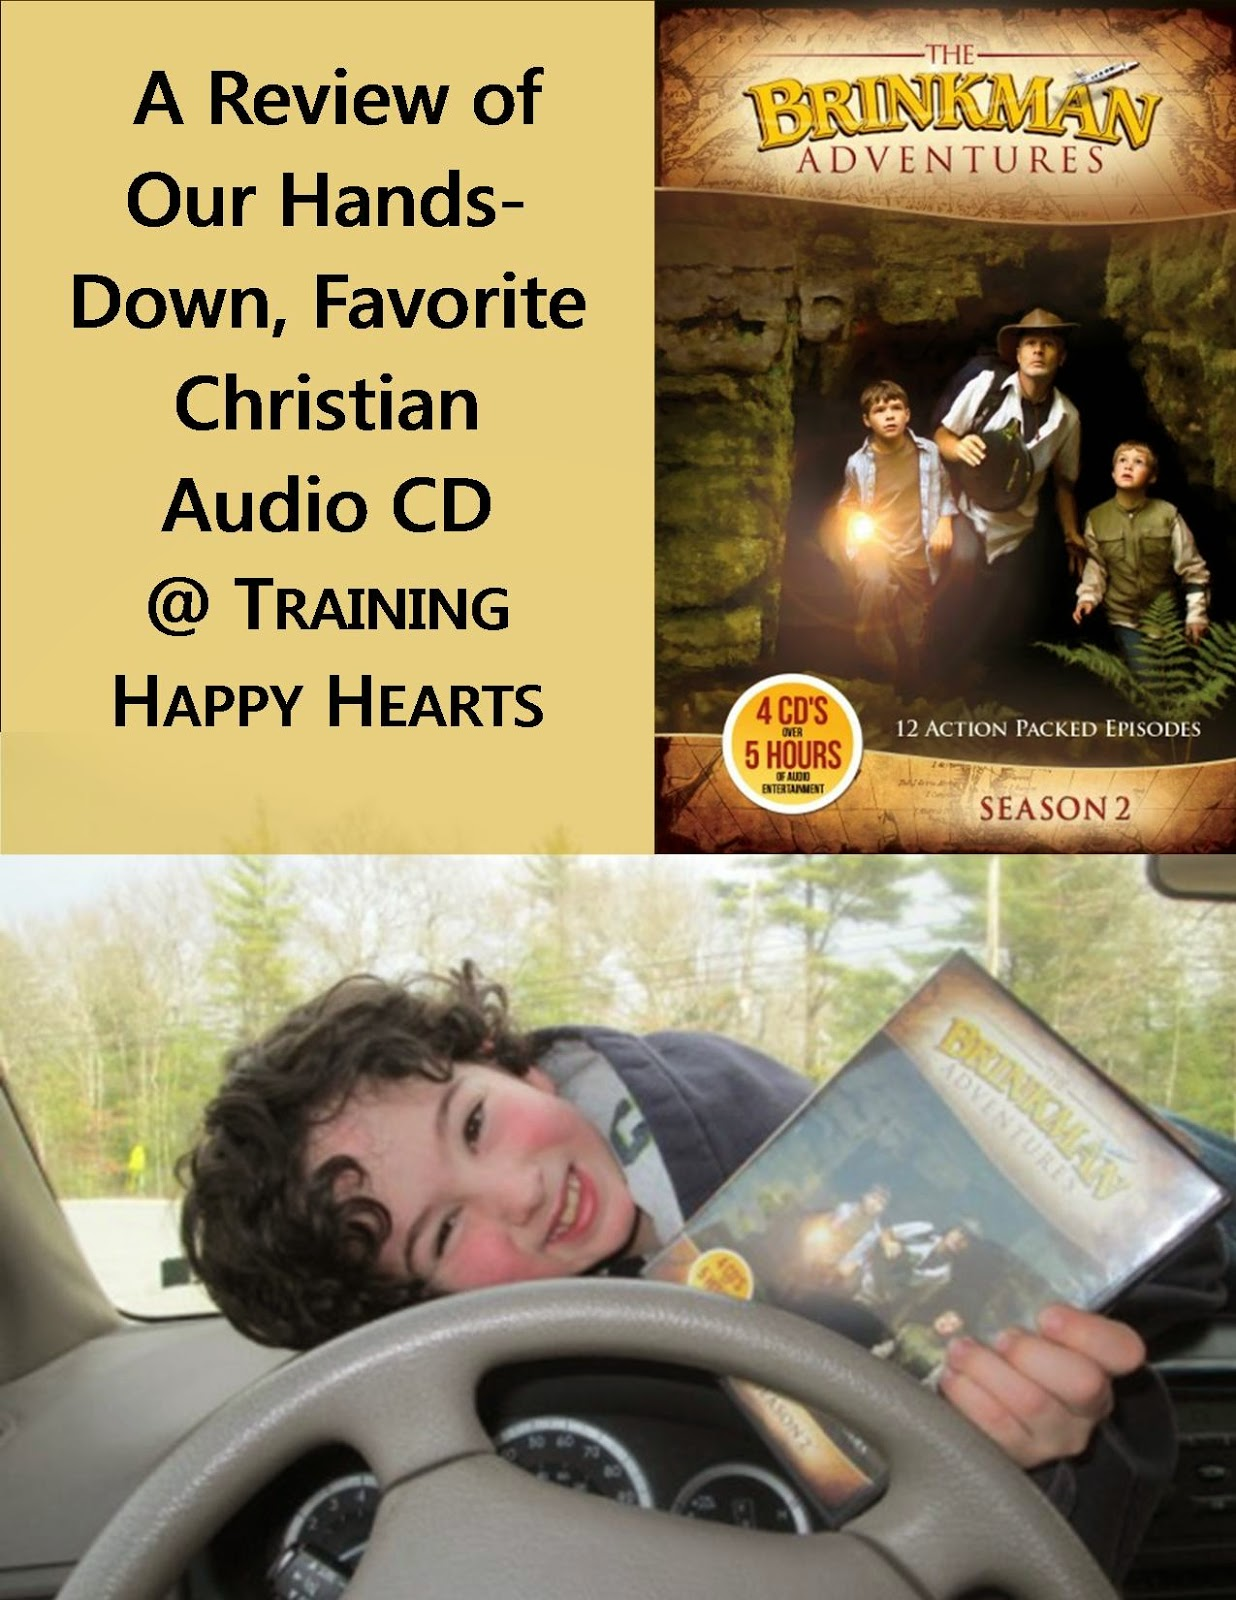 http://traininghappyhearts.blogspot.com/2014/04/our-hands-down-favorite-christian-audio.html